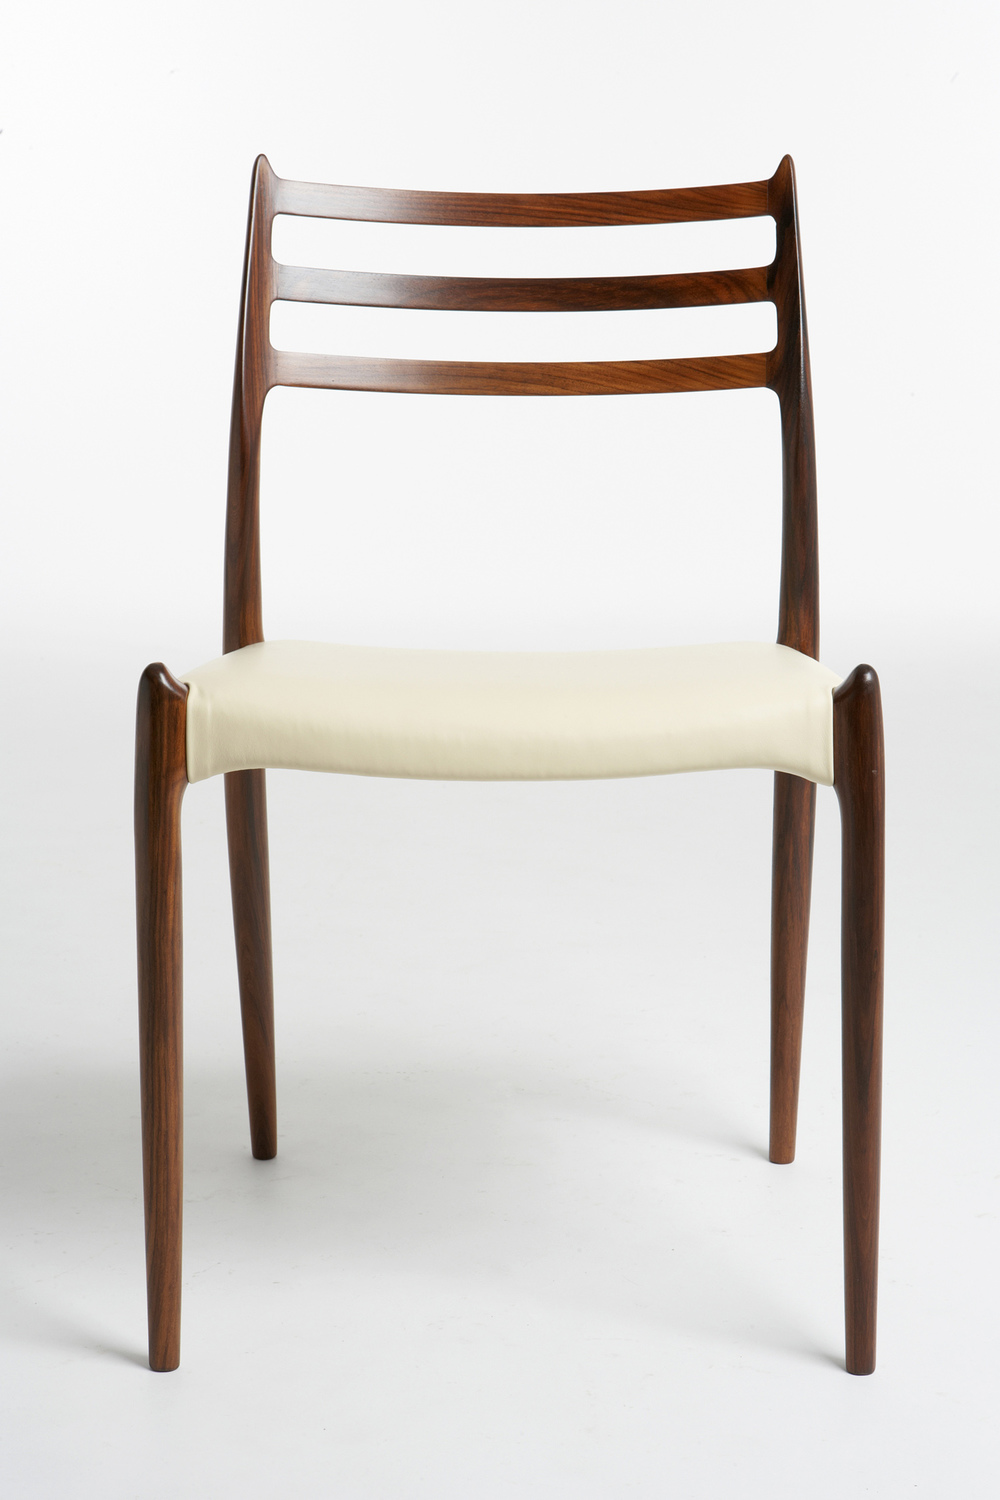 N O Moller 1962 Dining Chair • made 1970-79 •